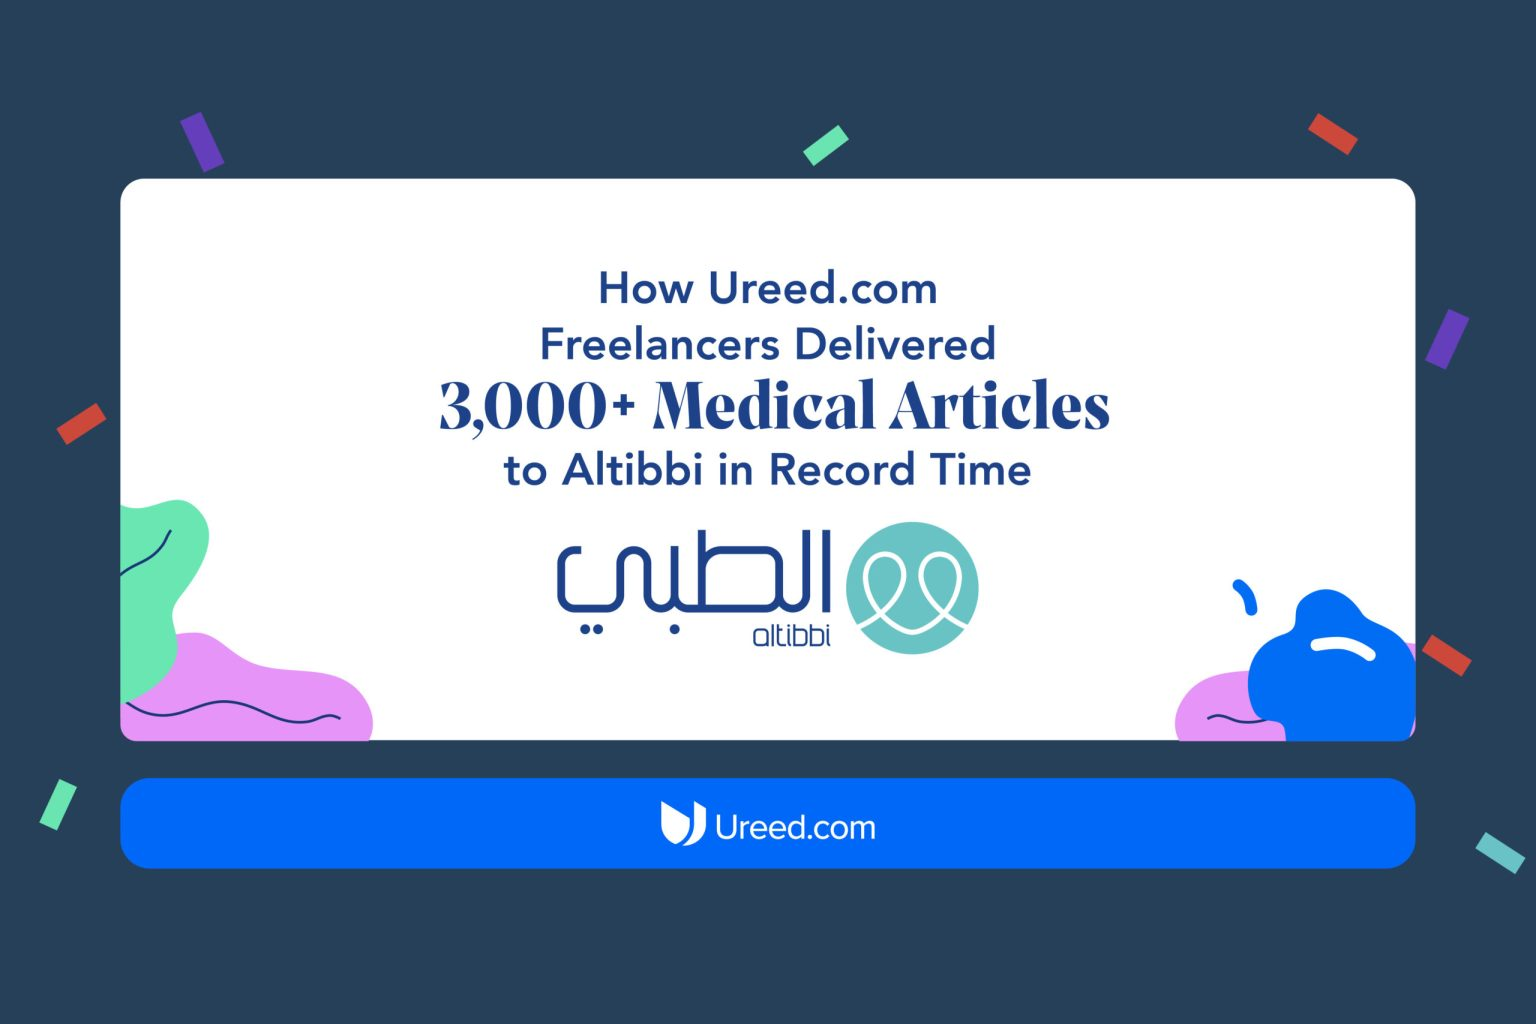 How Ureed.com Freelancers Delivered 3,000+ Medical Articles to Altibbi in Record Time